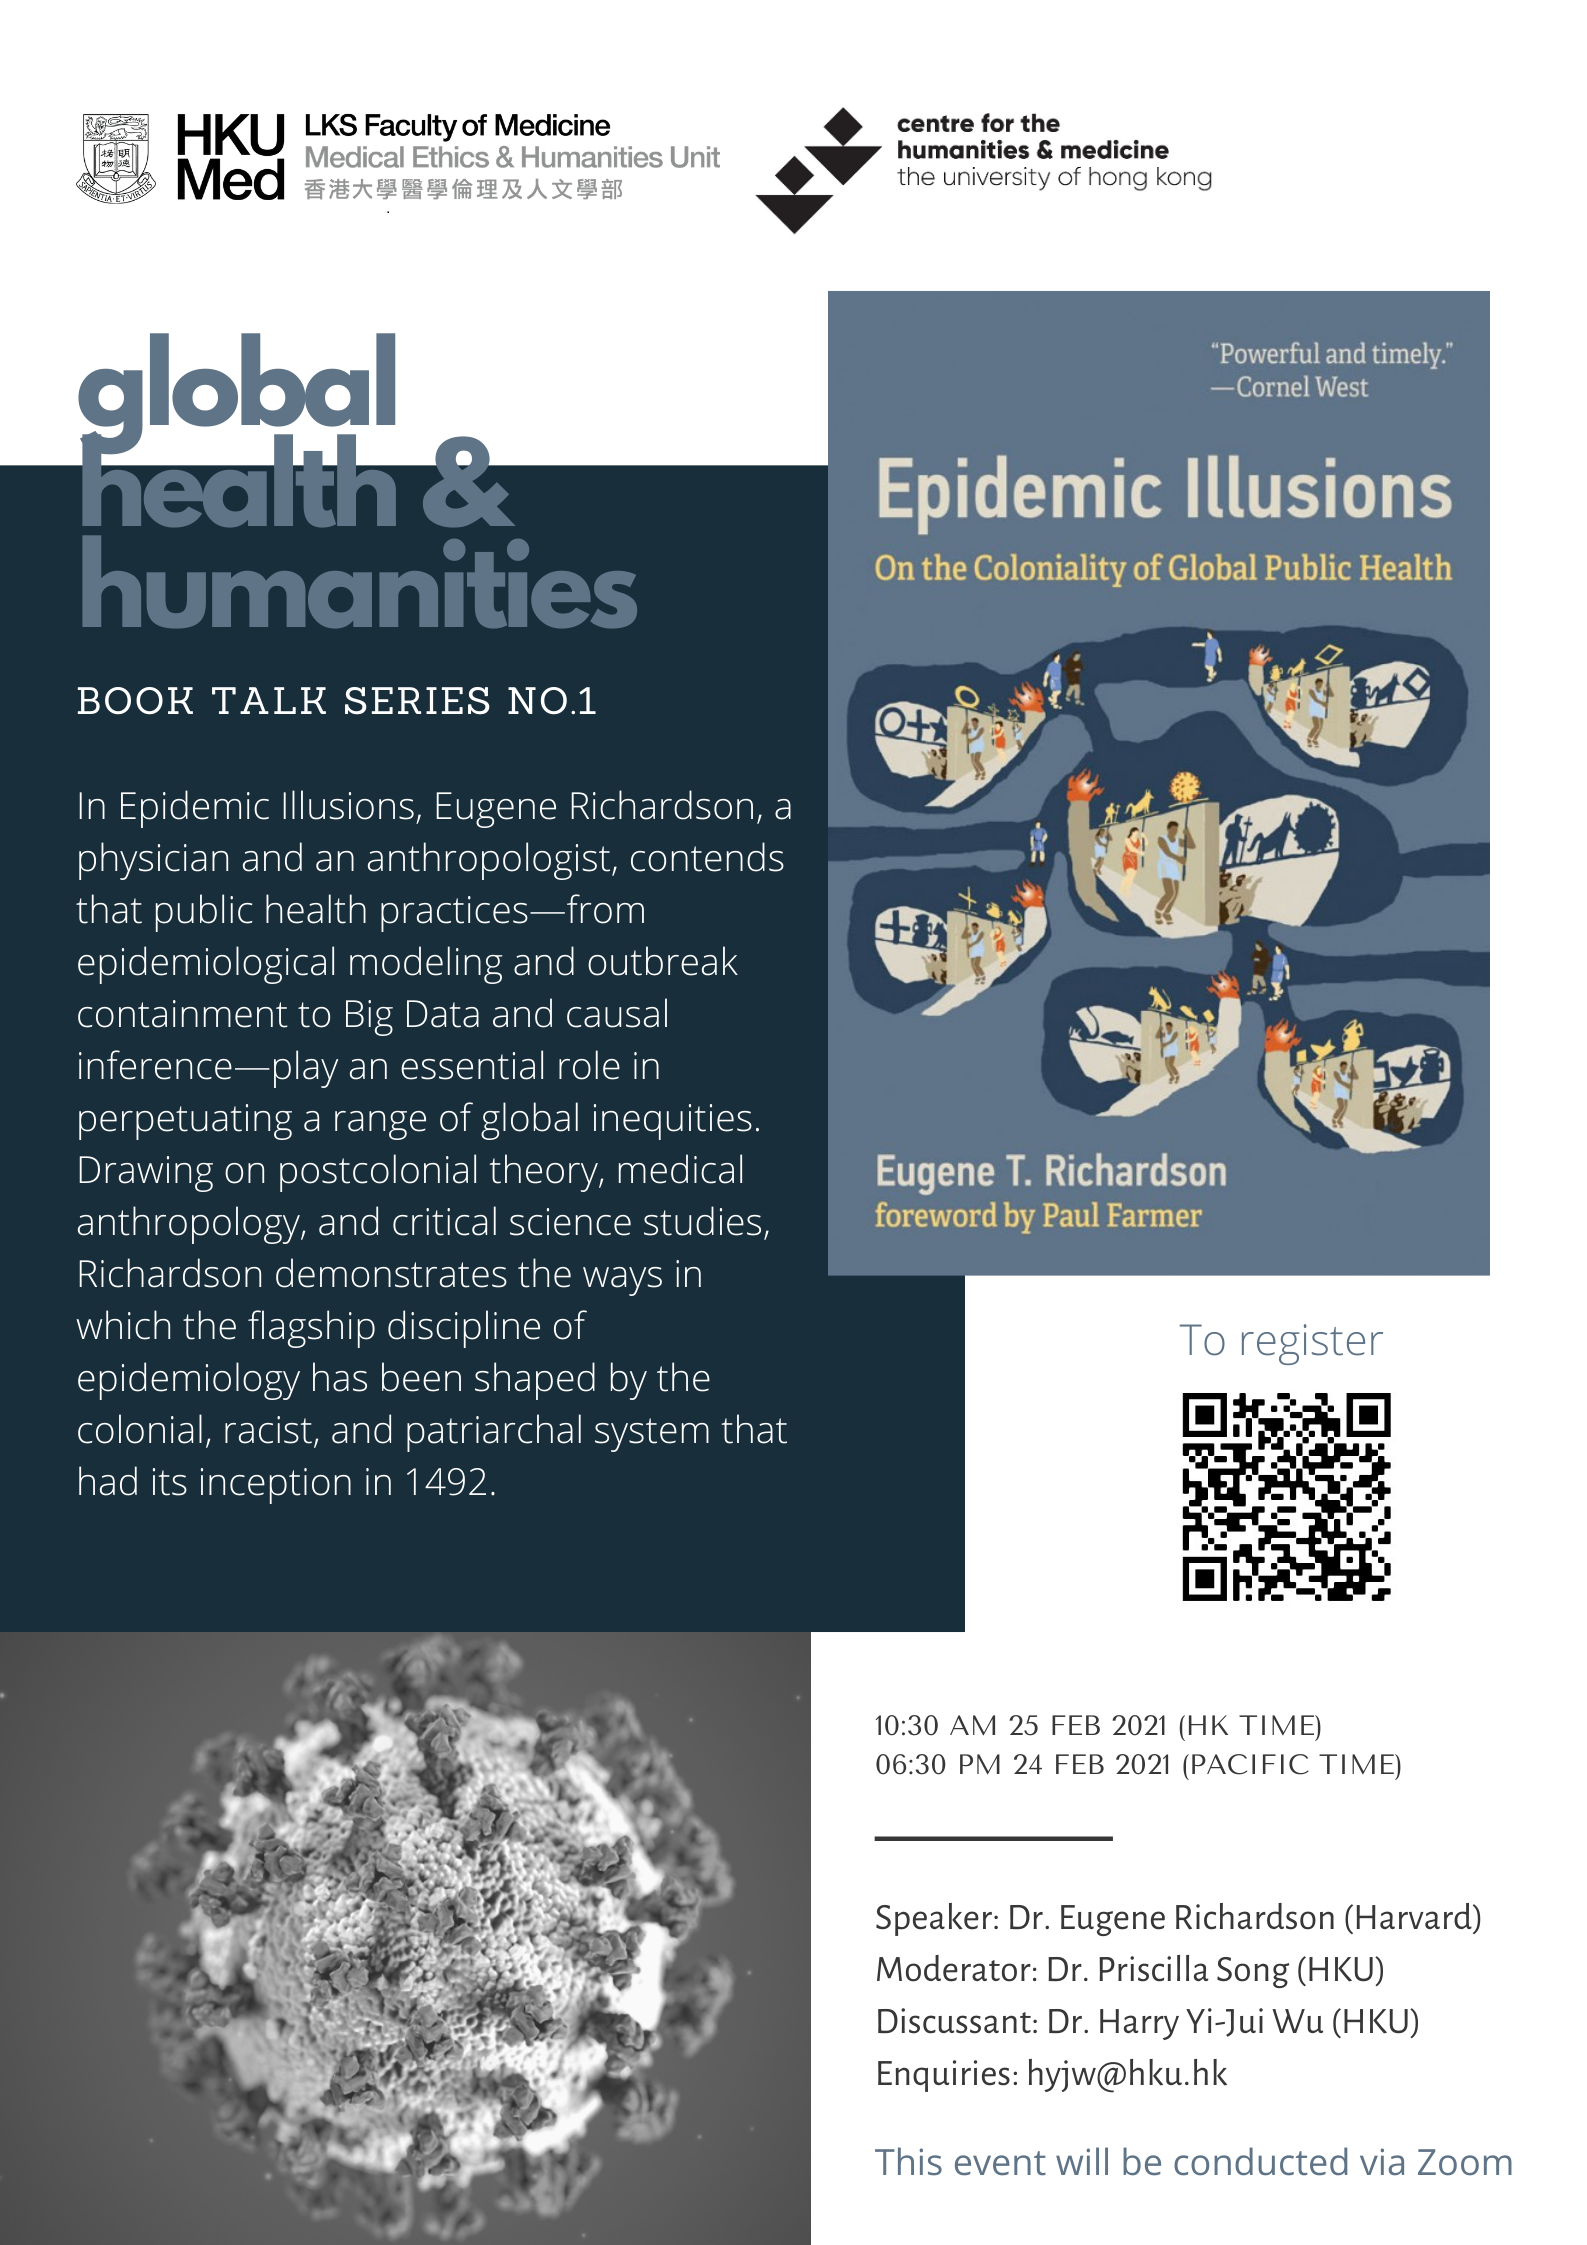 Book Talk Series No.1- Epidemic Illusions: On the Coloniality of Global Public Health